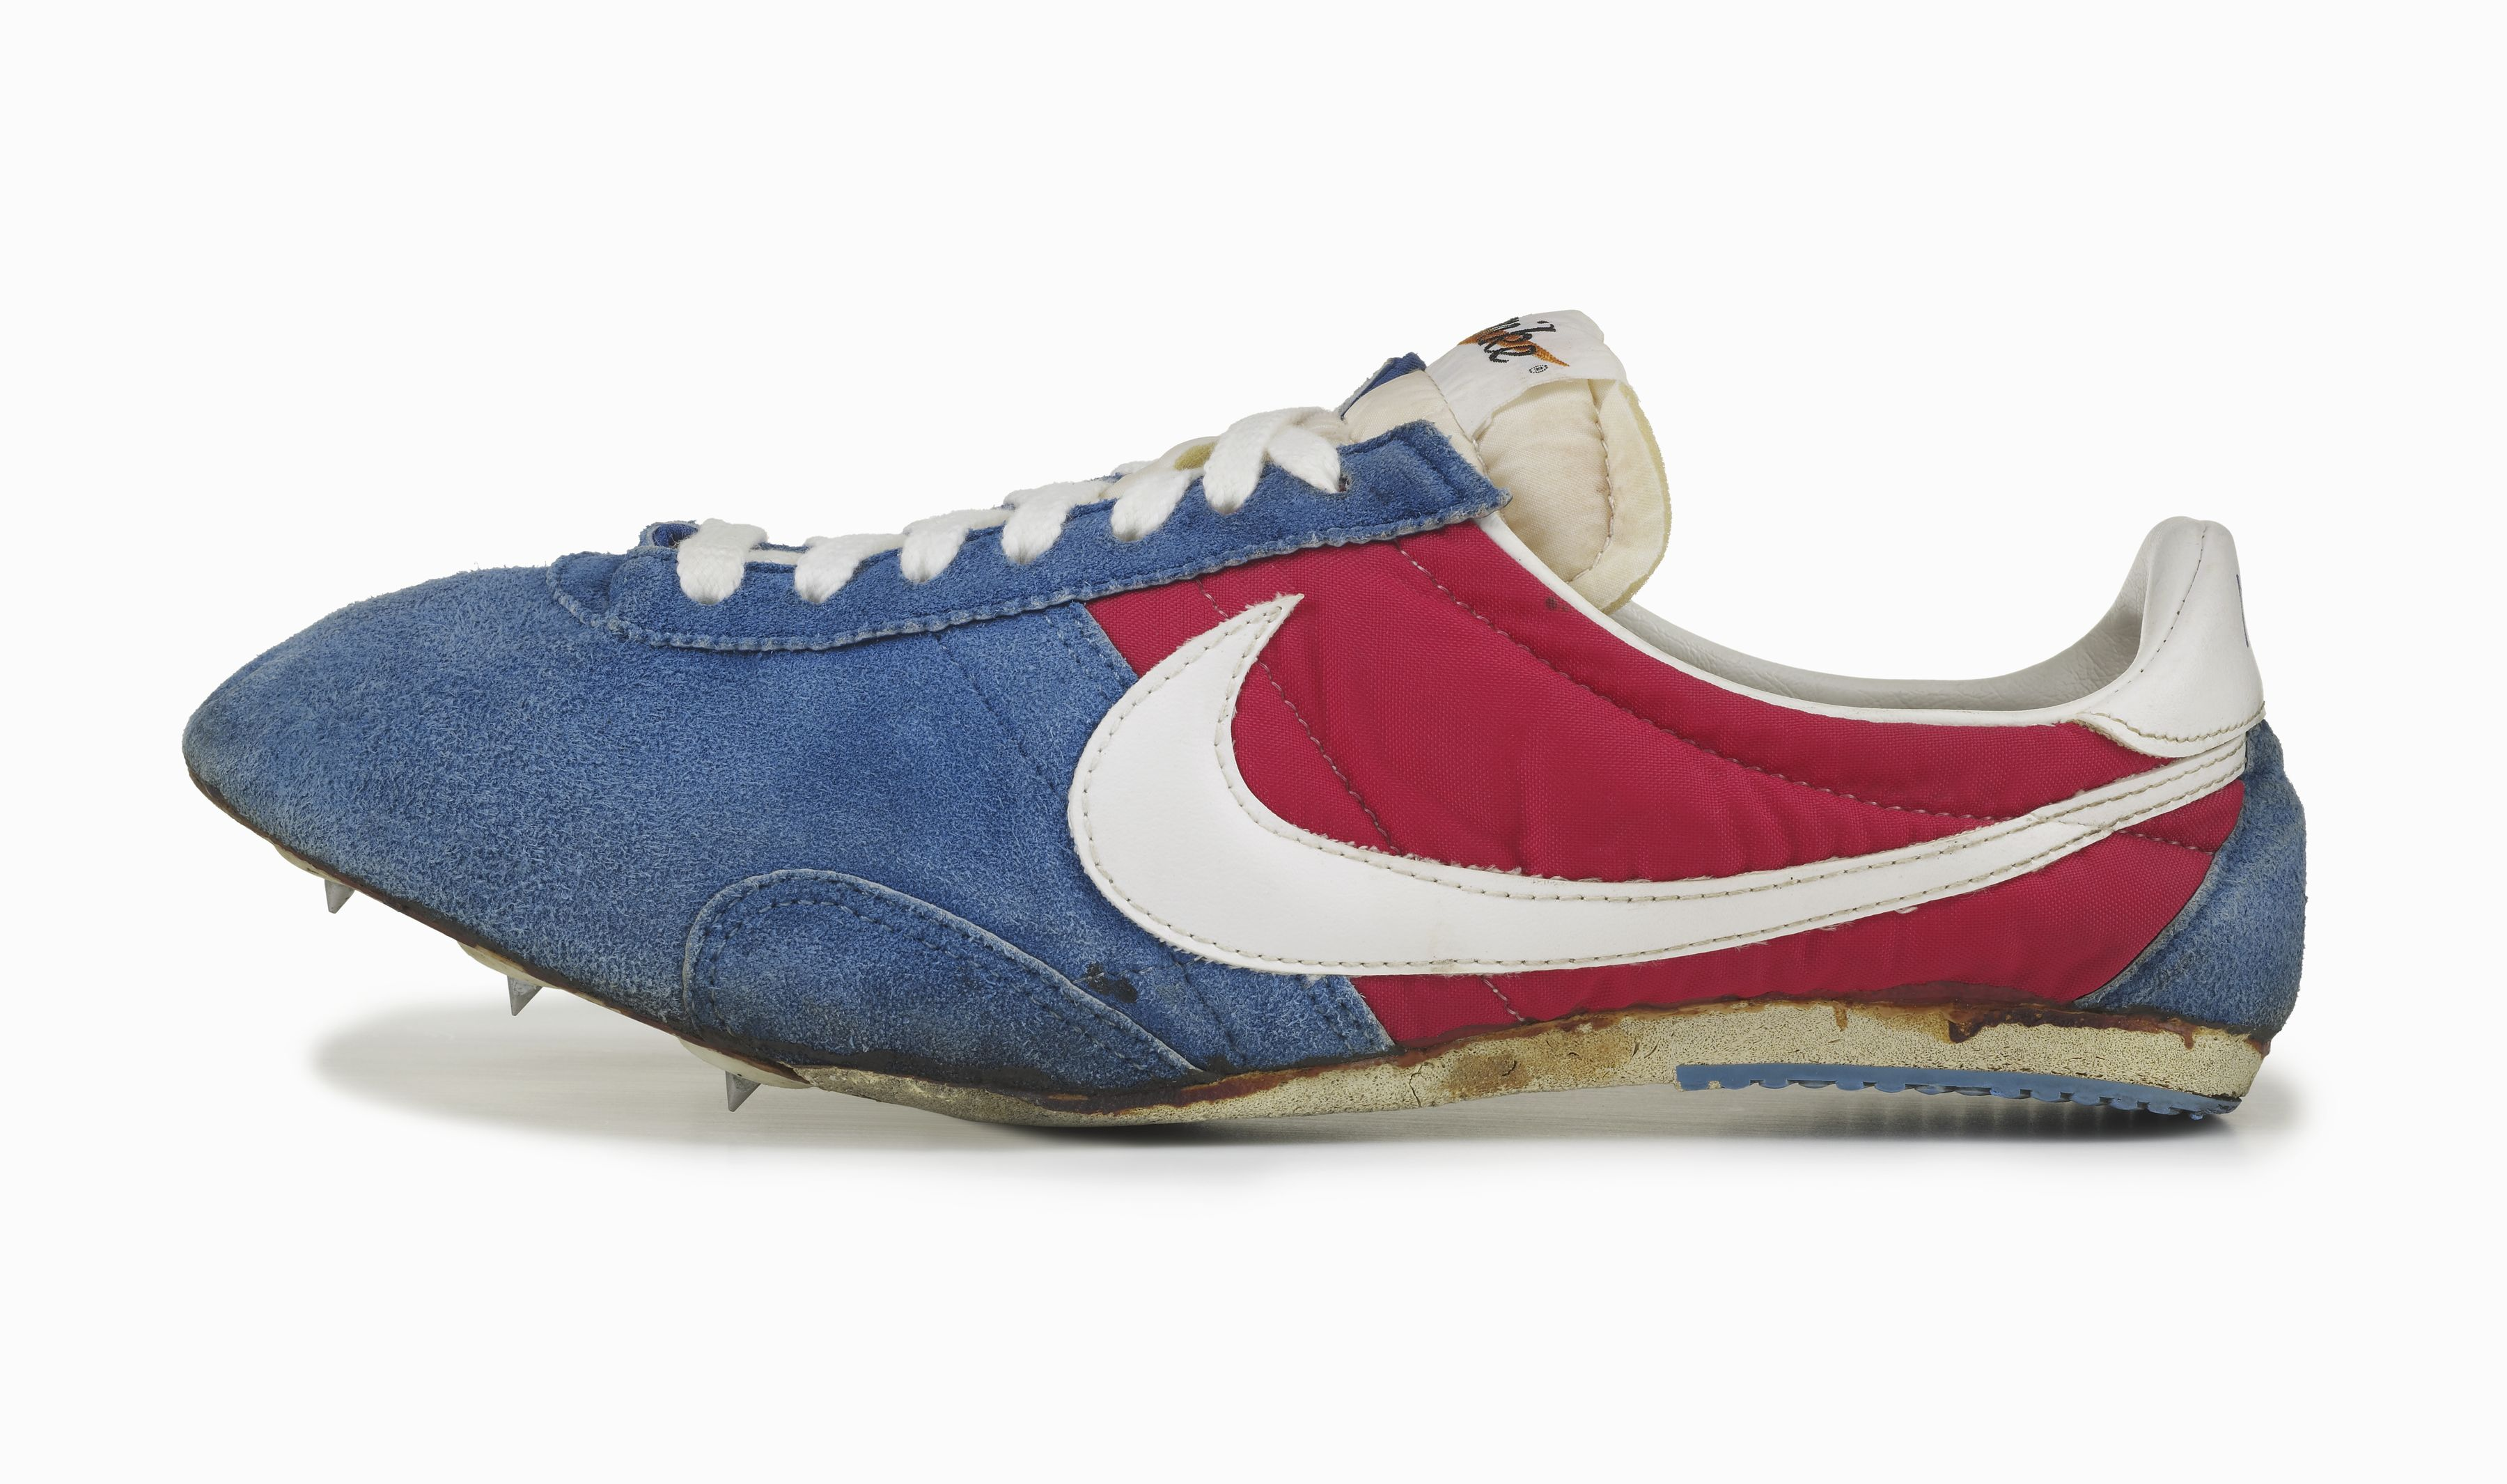 new product 1ac71 d04d0 The Visual History of the Nike Track Spike - Nike News